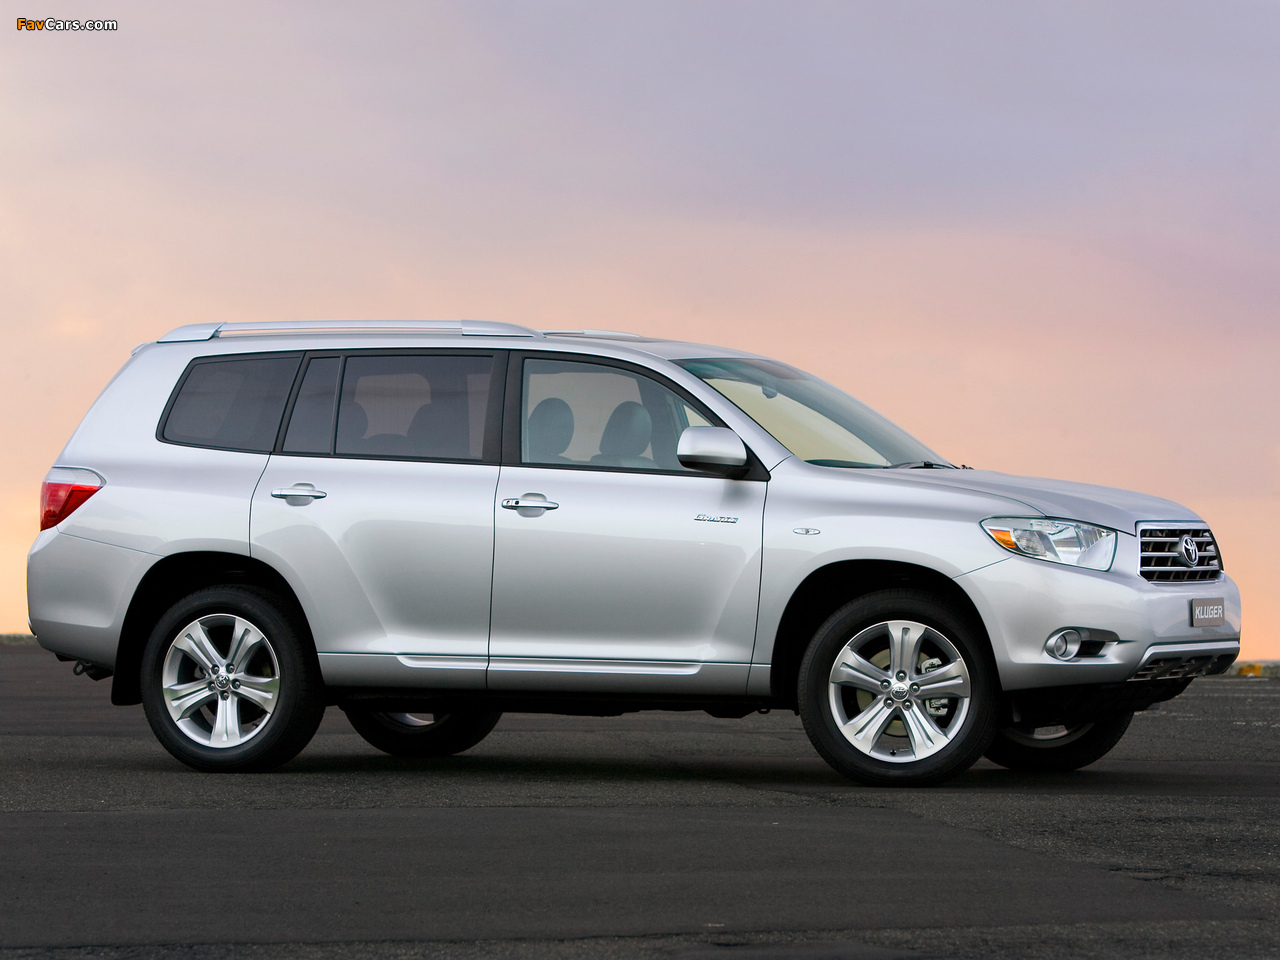 pictures of toyota kluger 2007�10 1280x960